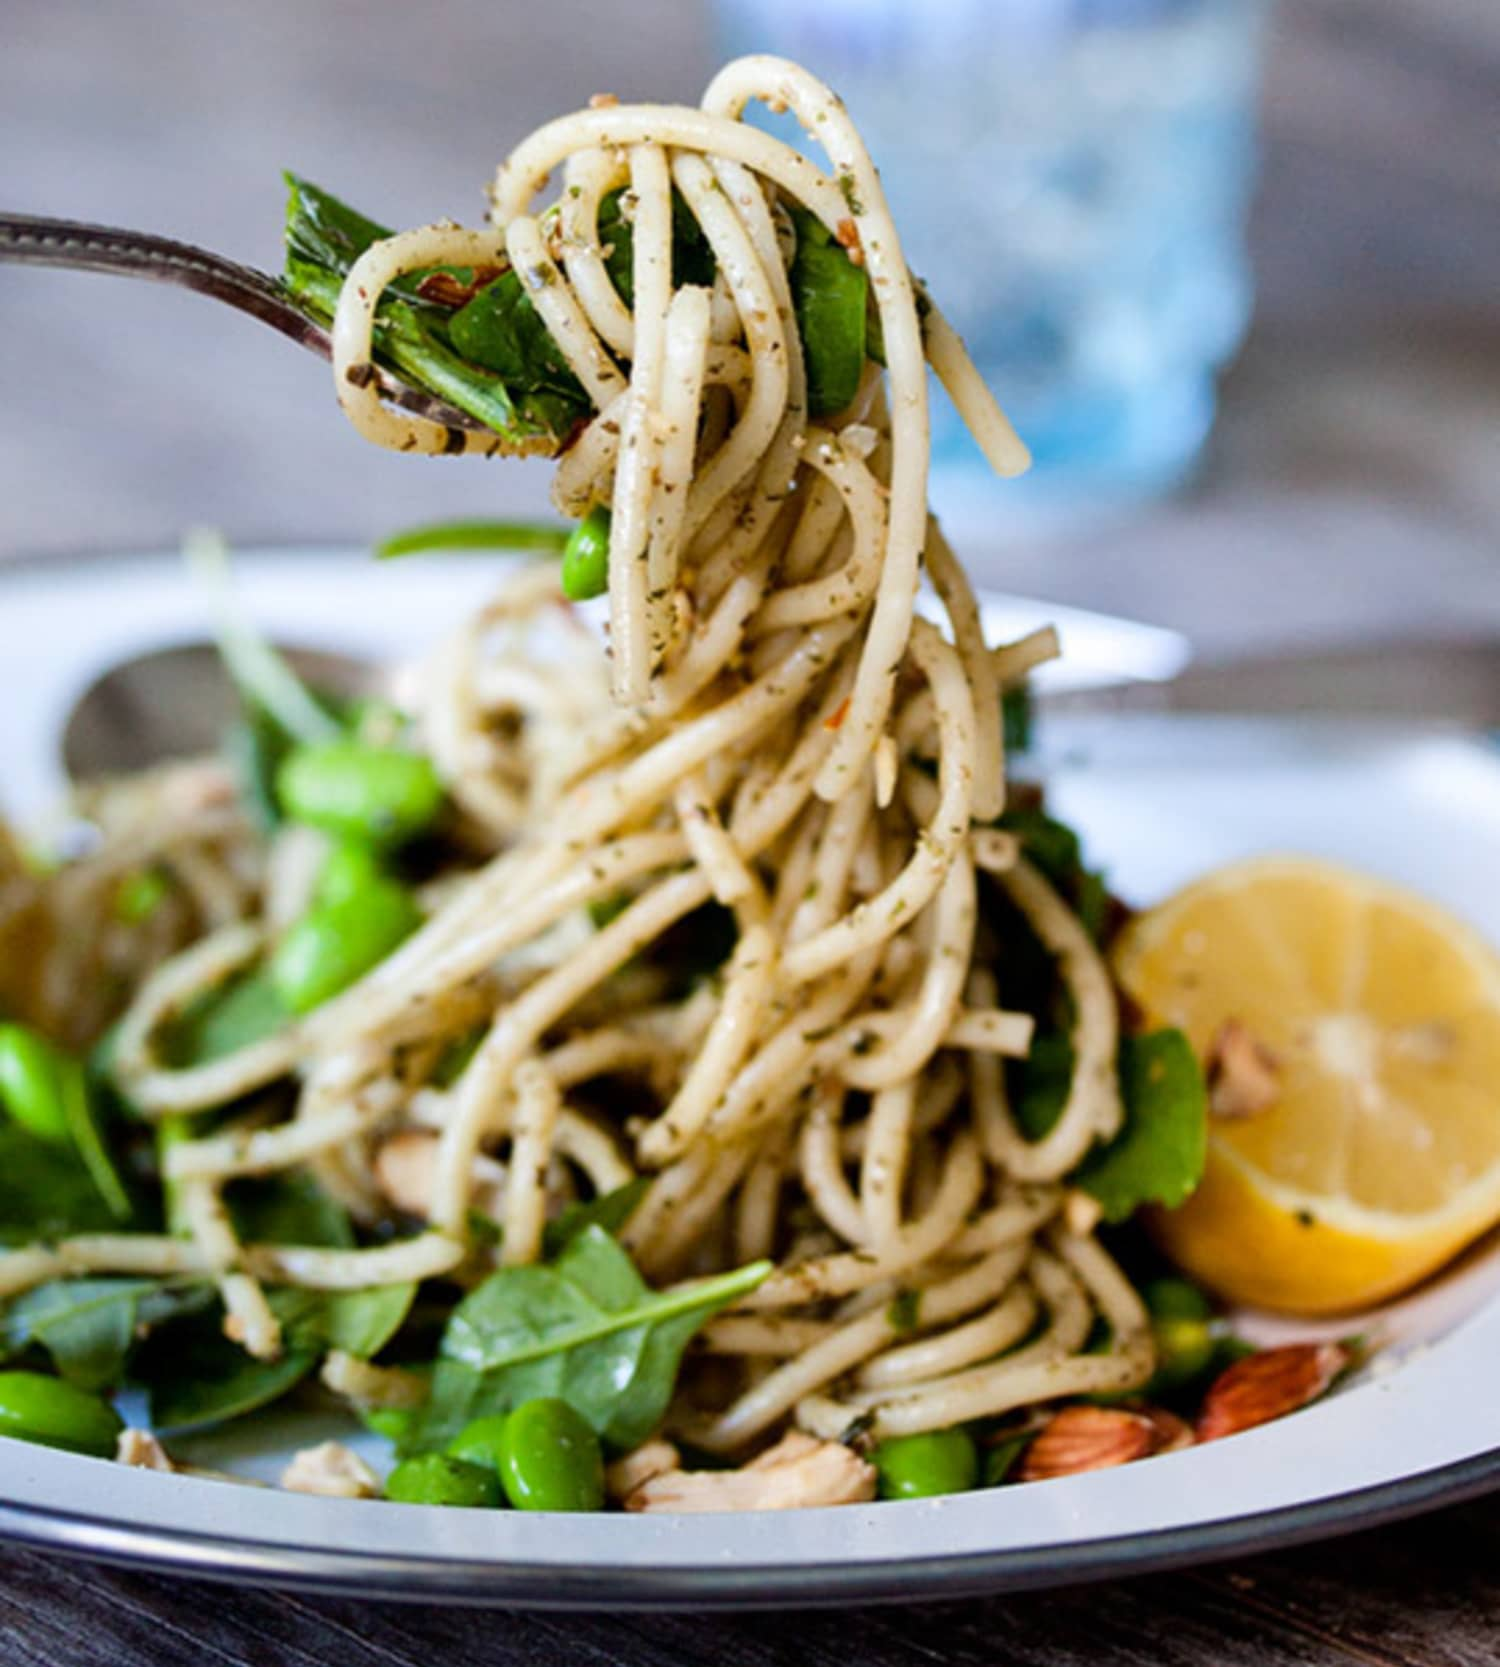 Meatless Meals: 15 Hearty Vegetarian Recipes